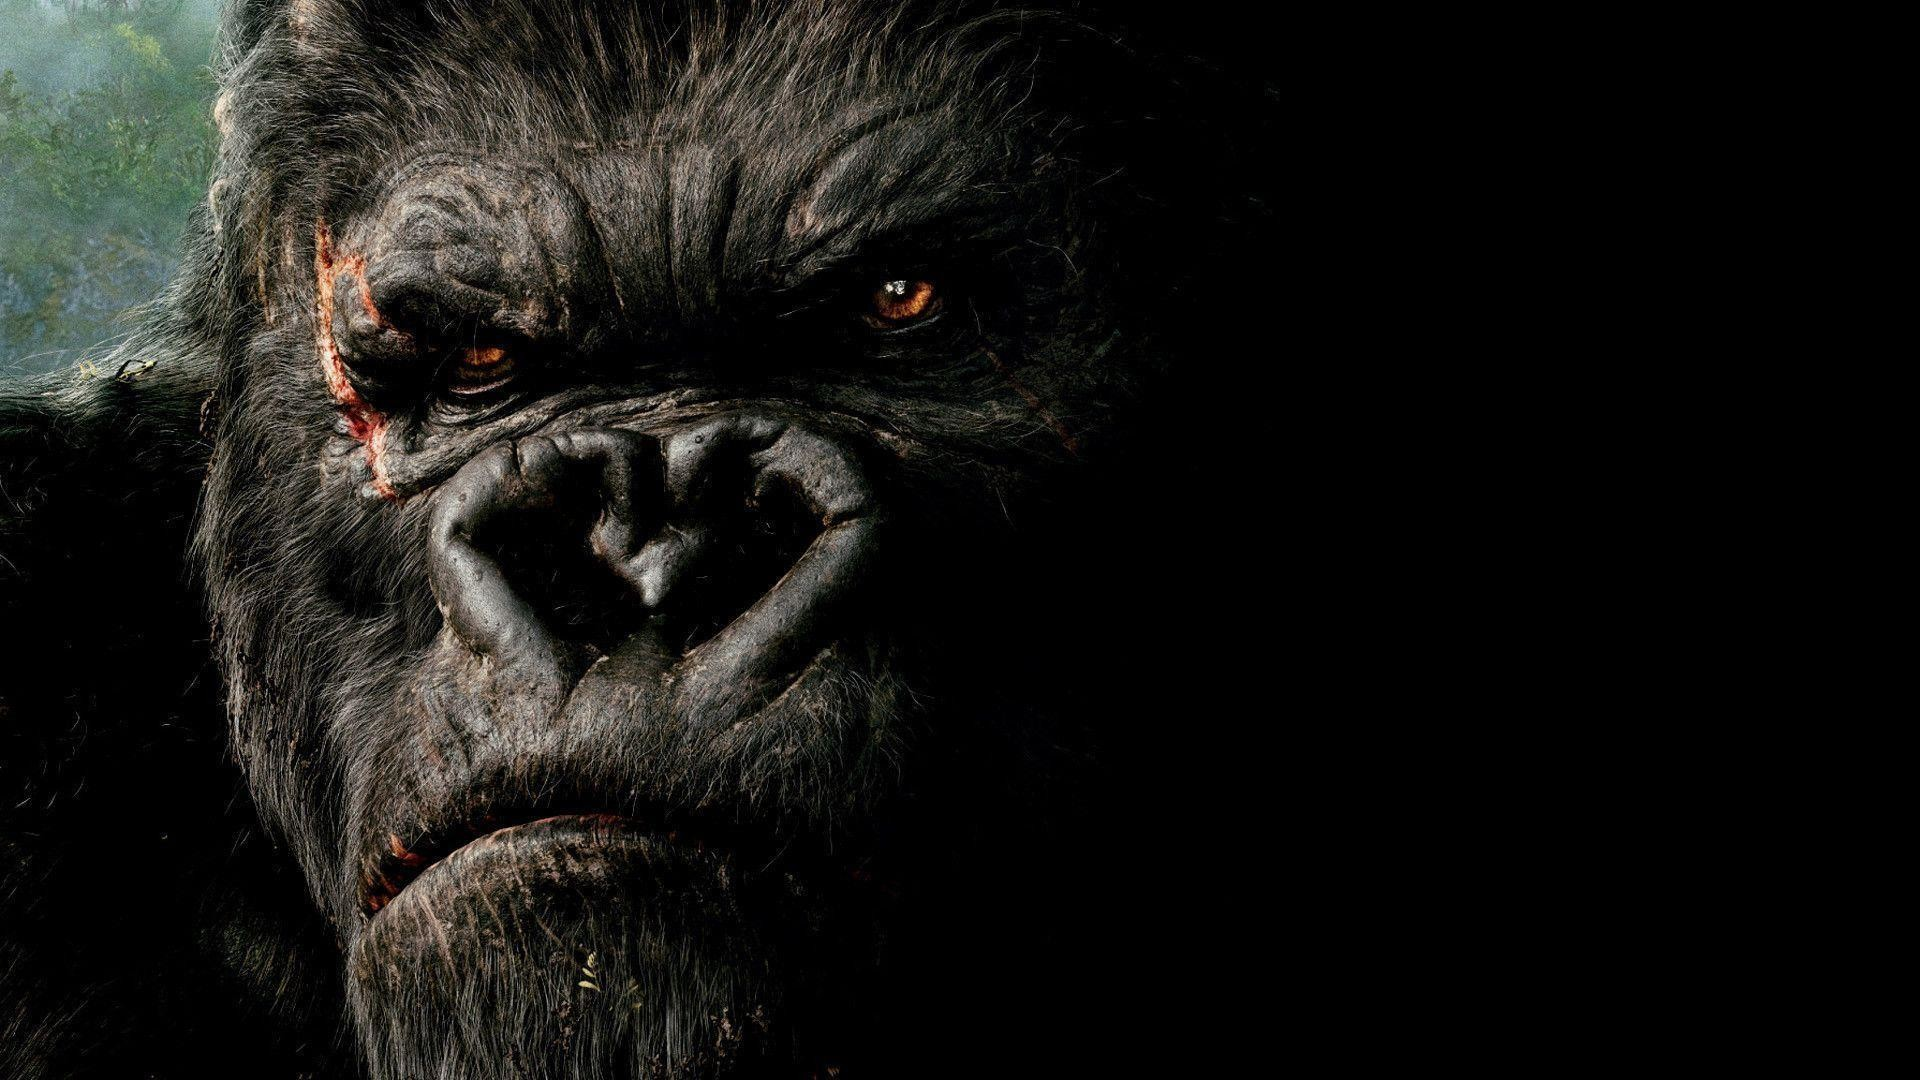 1920x1080 King Kong Wallpaper Hq Wallpaper 12560 Car Pictures